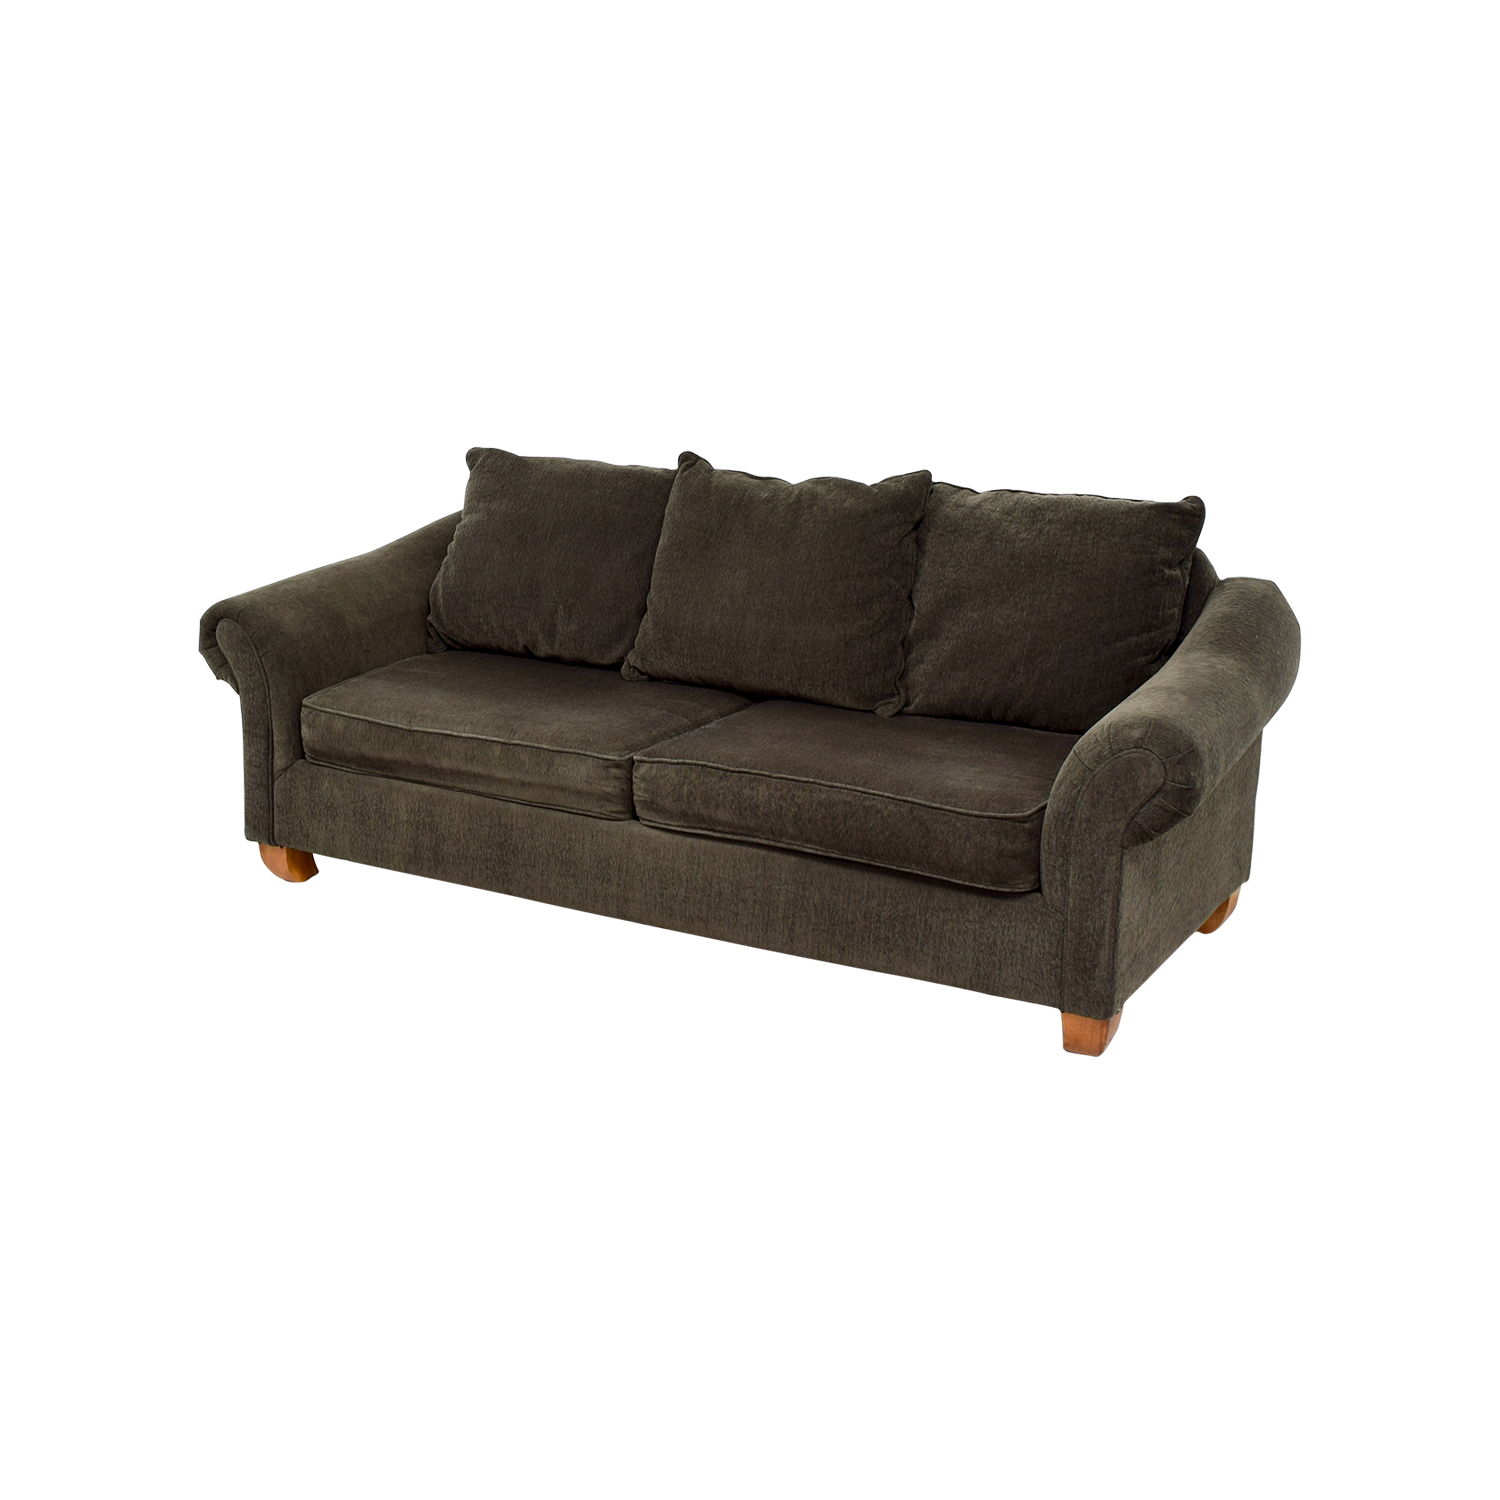 59% OFF Star Furniture Star Furniture Brown Curved Arm Sofa Sofas